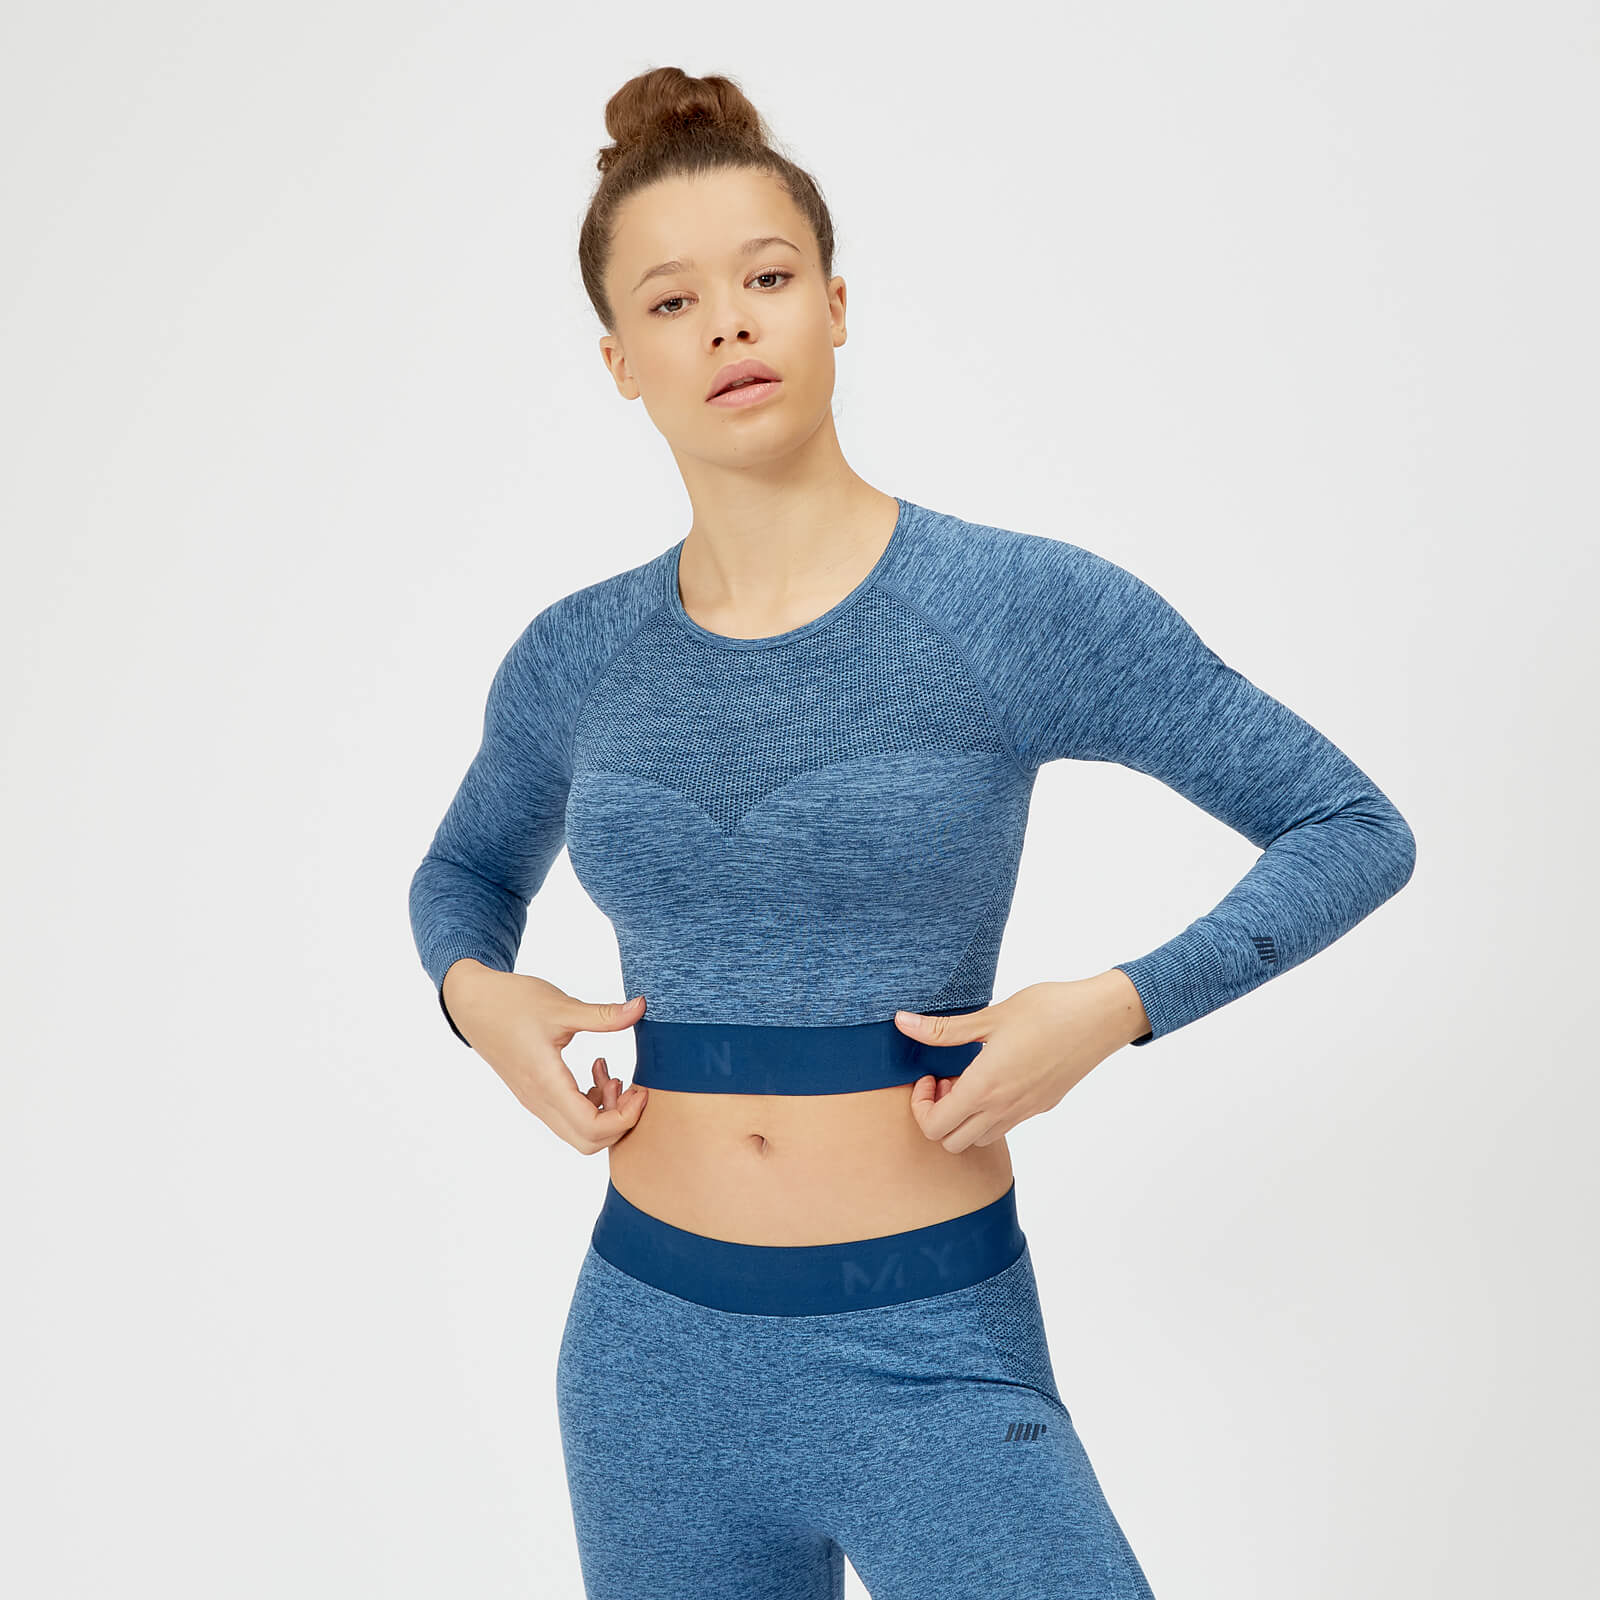 995e5648709d8d ... Inspire Seamless Crop Top - Blue - XS - Soft Blue